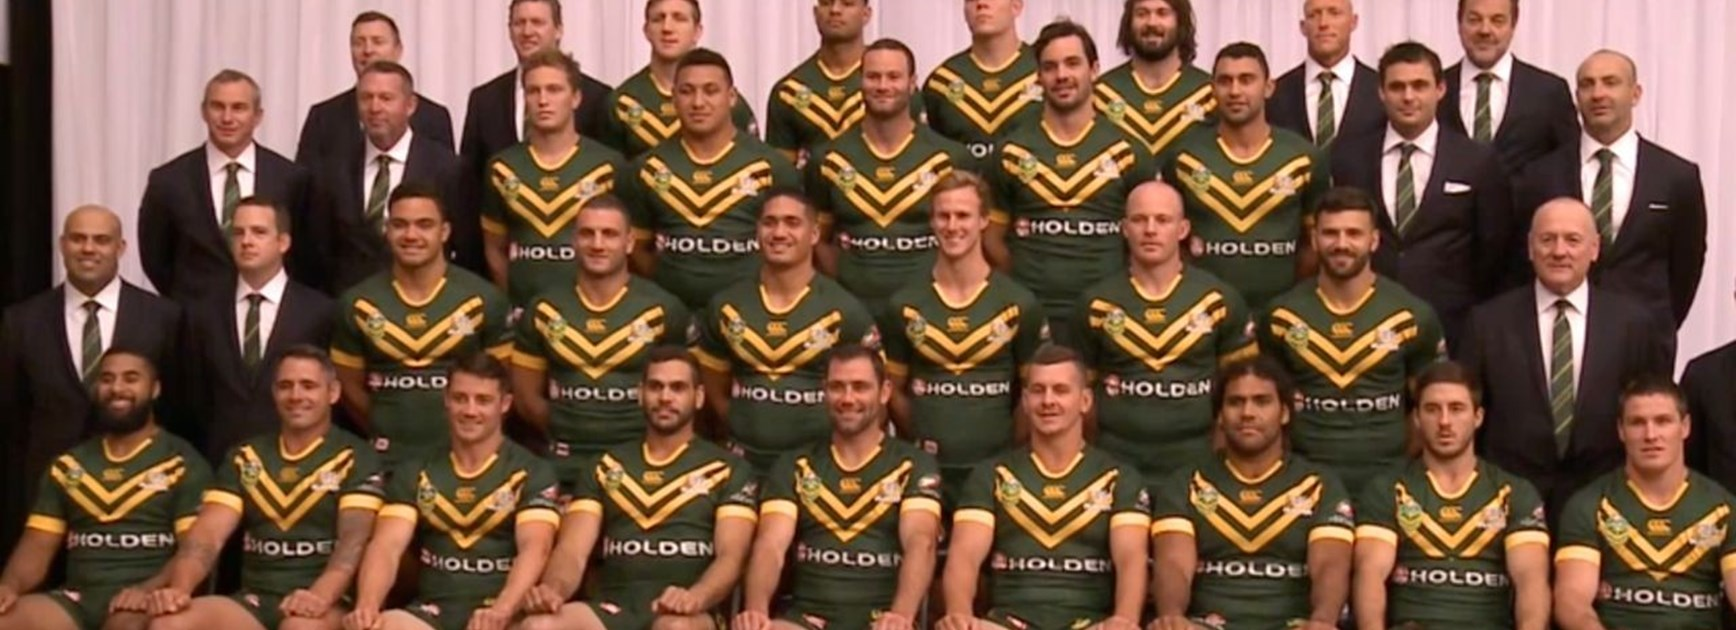 Kangaroos team photo shoot